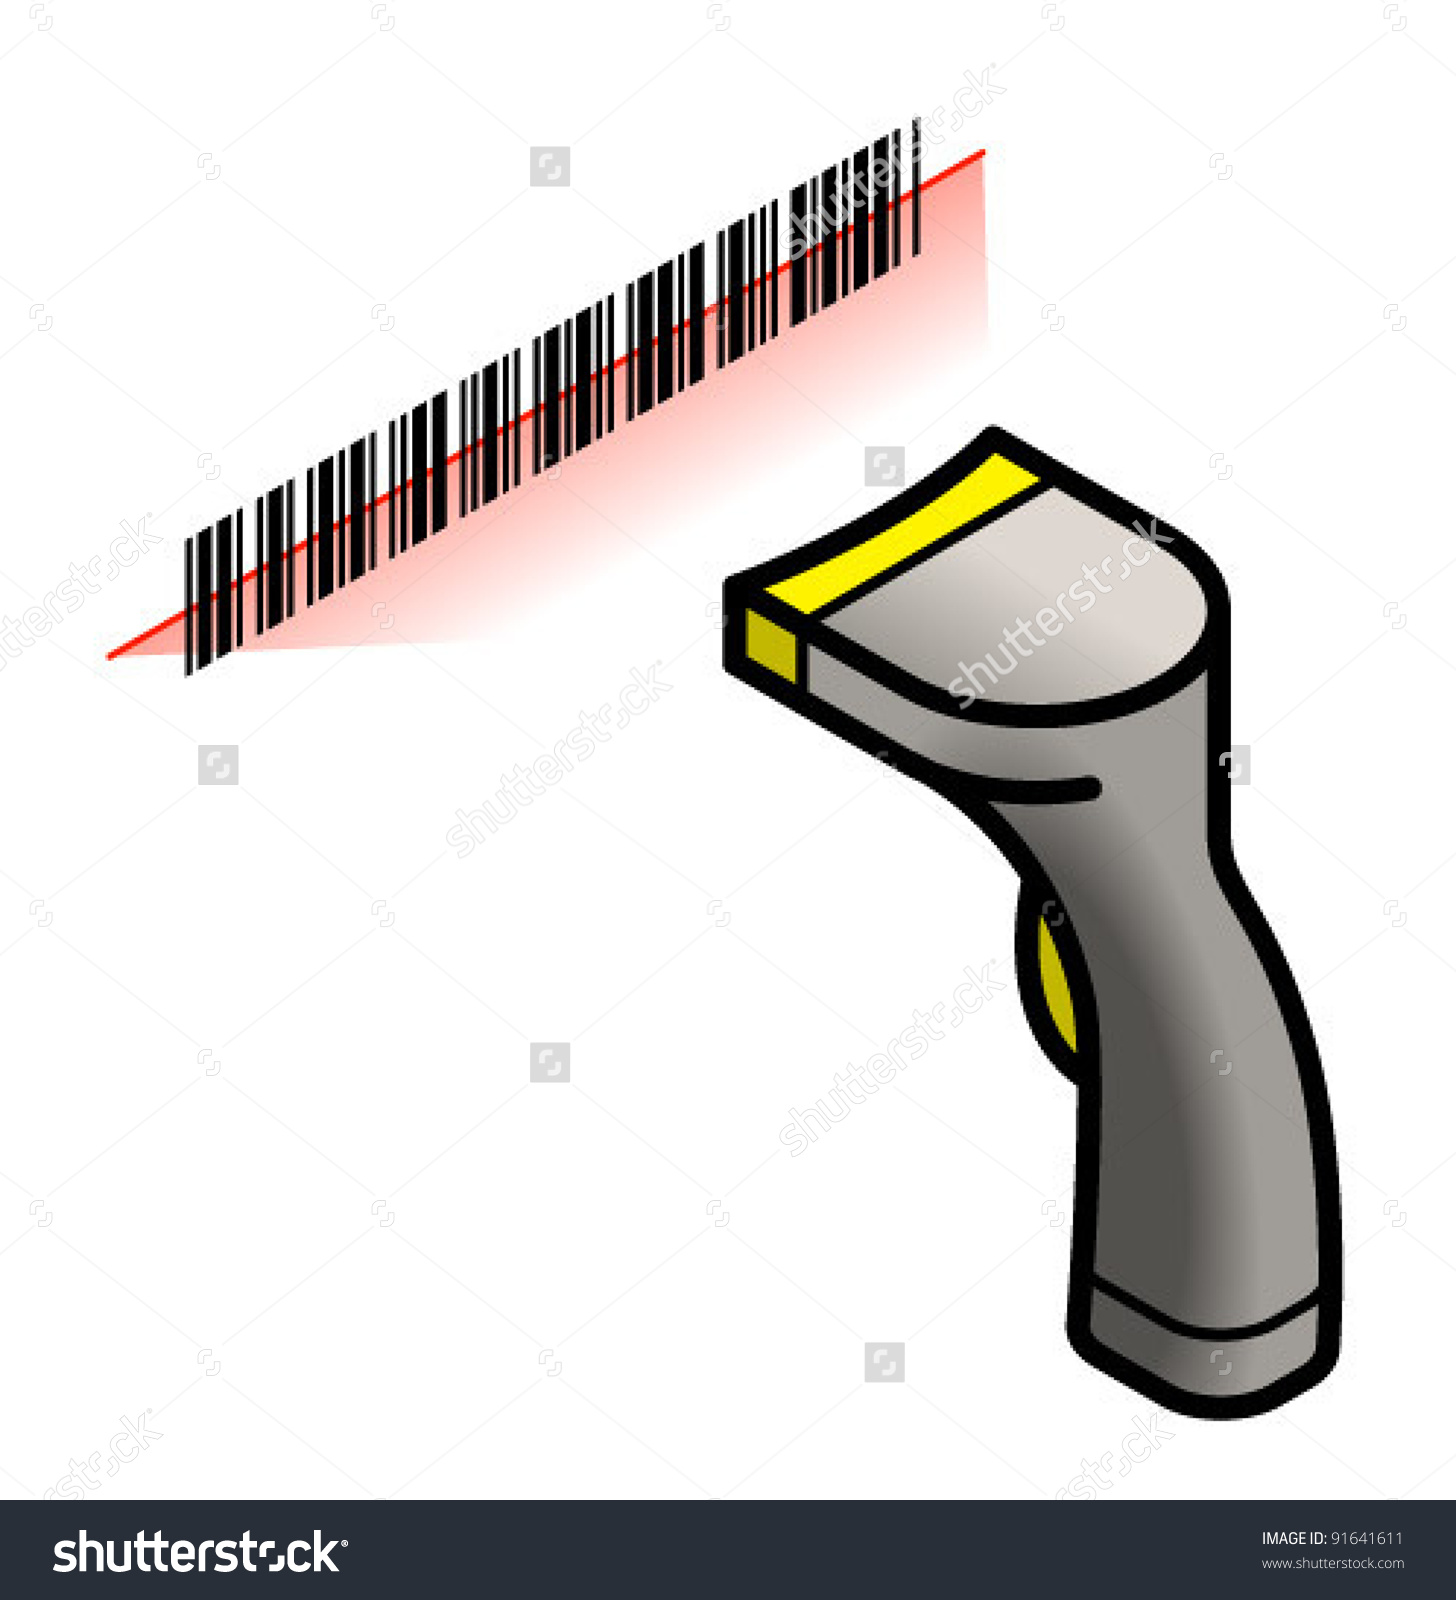 Handheld barcode scanner clipart.